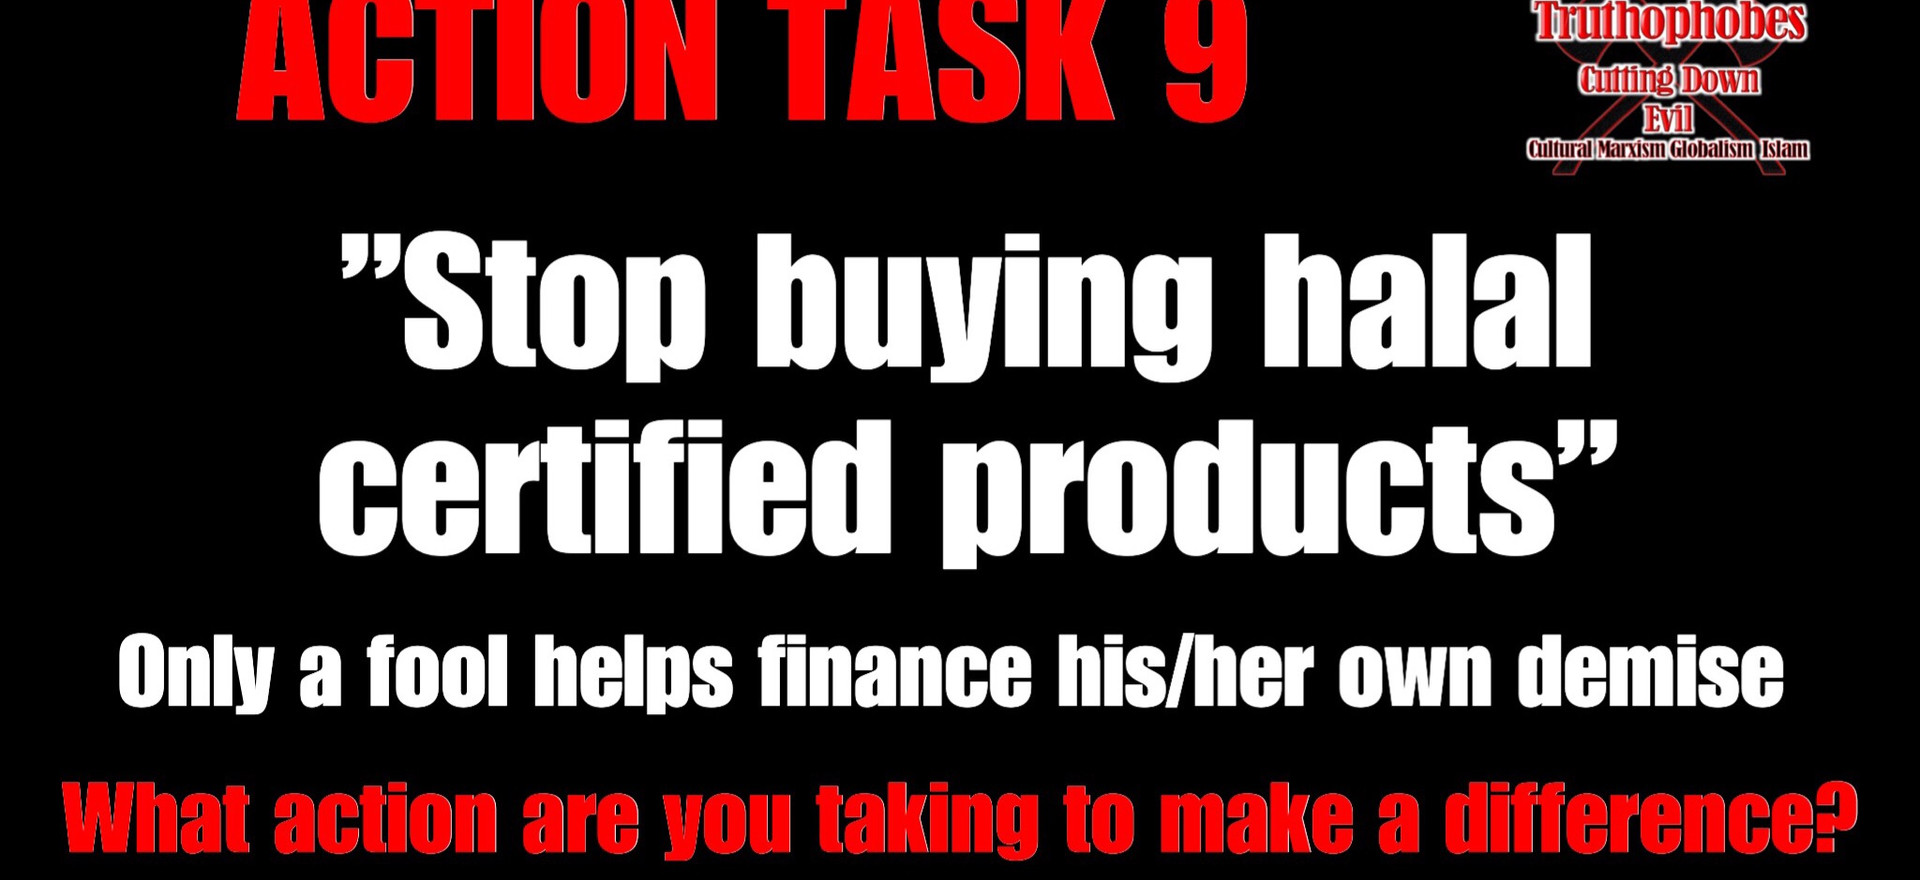 """TAKE ACTION  A task every patriot can do - """"Stop buying halal certified products""""  Why would you buy products such as Vegemite, Cadbury, Nescafe, Moccona, Bega Cheese and many more halal certified products, knowing they help fund islam?  Future generations will be hurt because either you're a fool or too selfish to change brands.  TAKE ACTION  CURRENT BOYCOTT TO ADD TO THE LIST McCain Frozen Foods Only a complete vegetable eats vegies that fund mosques.  A new Boycott Target Announced each Sunday on the Home Page of the Truthophobes Website"""